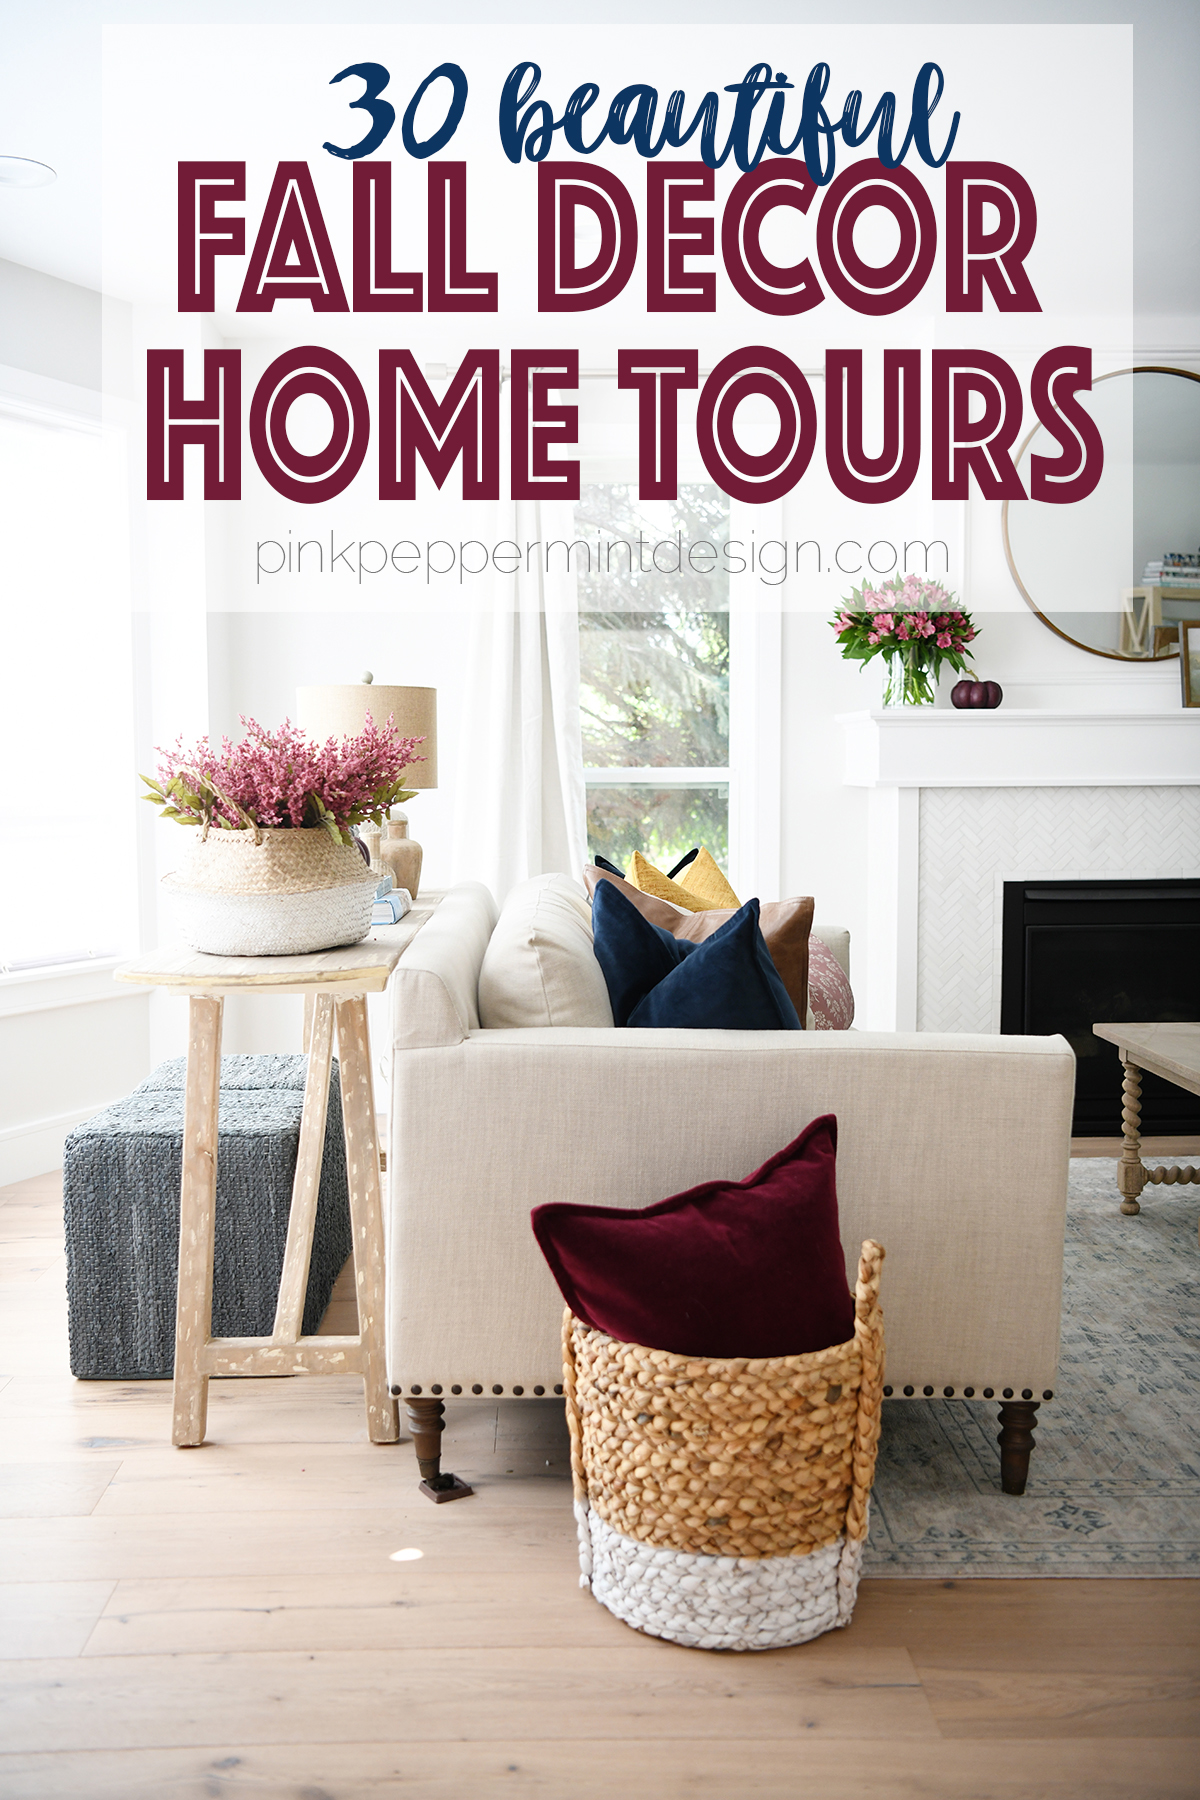 Fall decor home tours